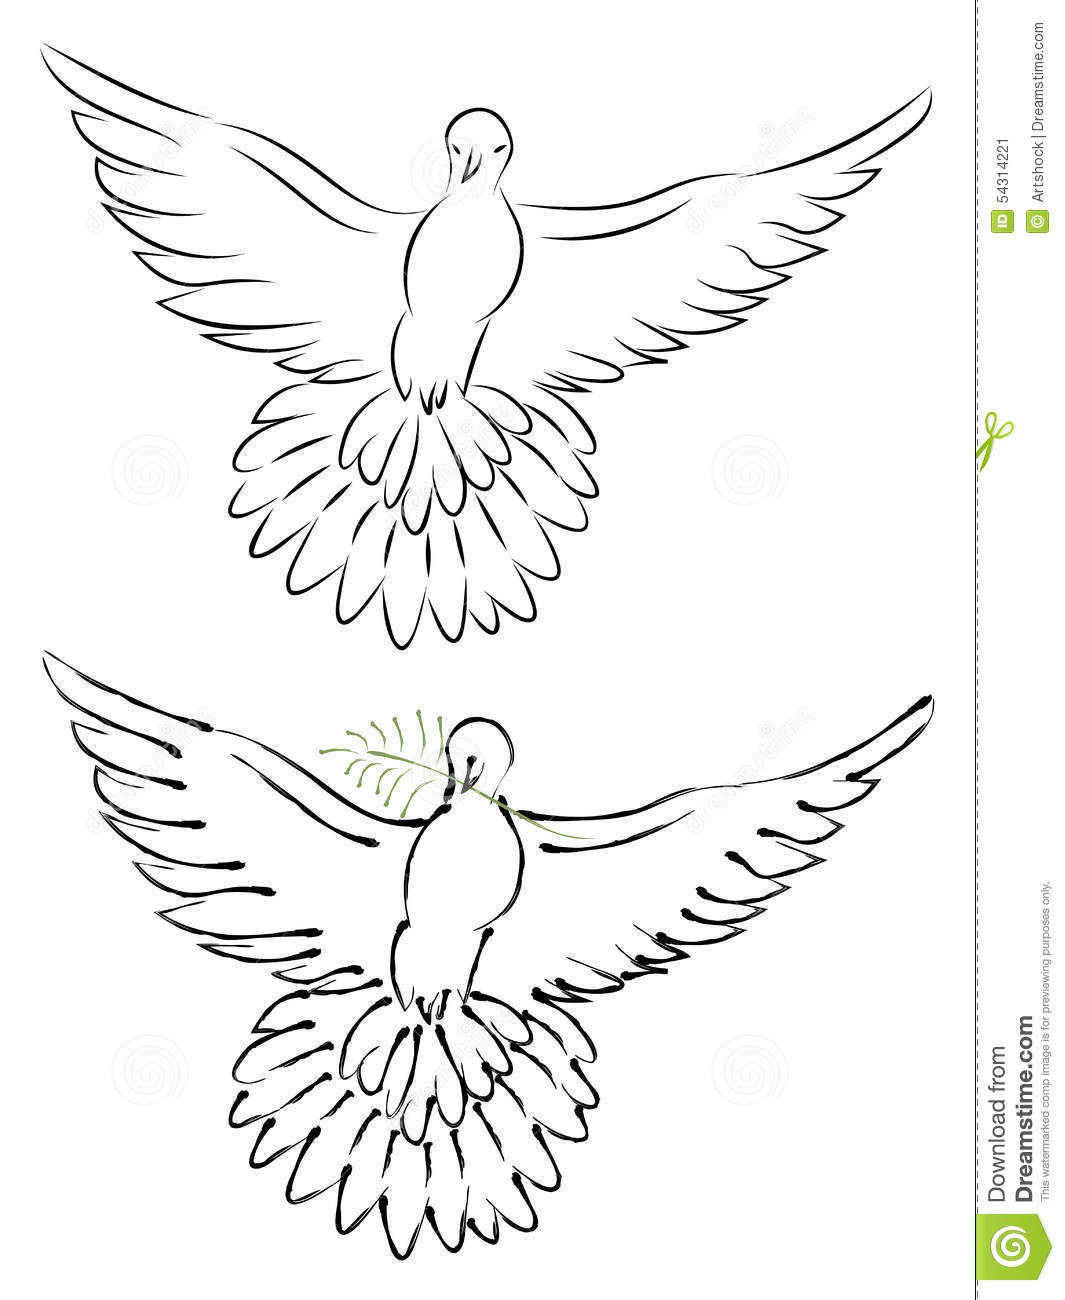 Line Drawing Dove : Dove line art stock vector image